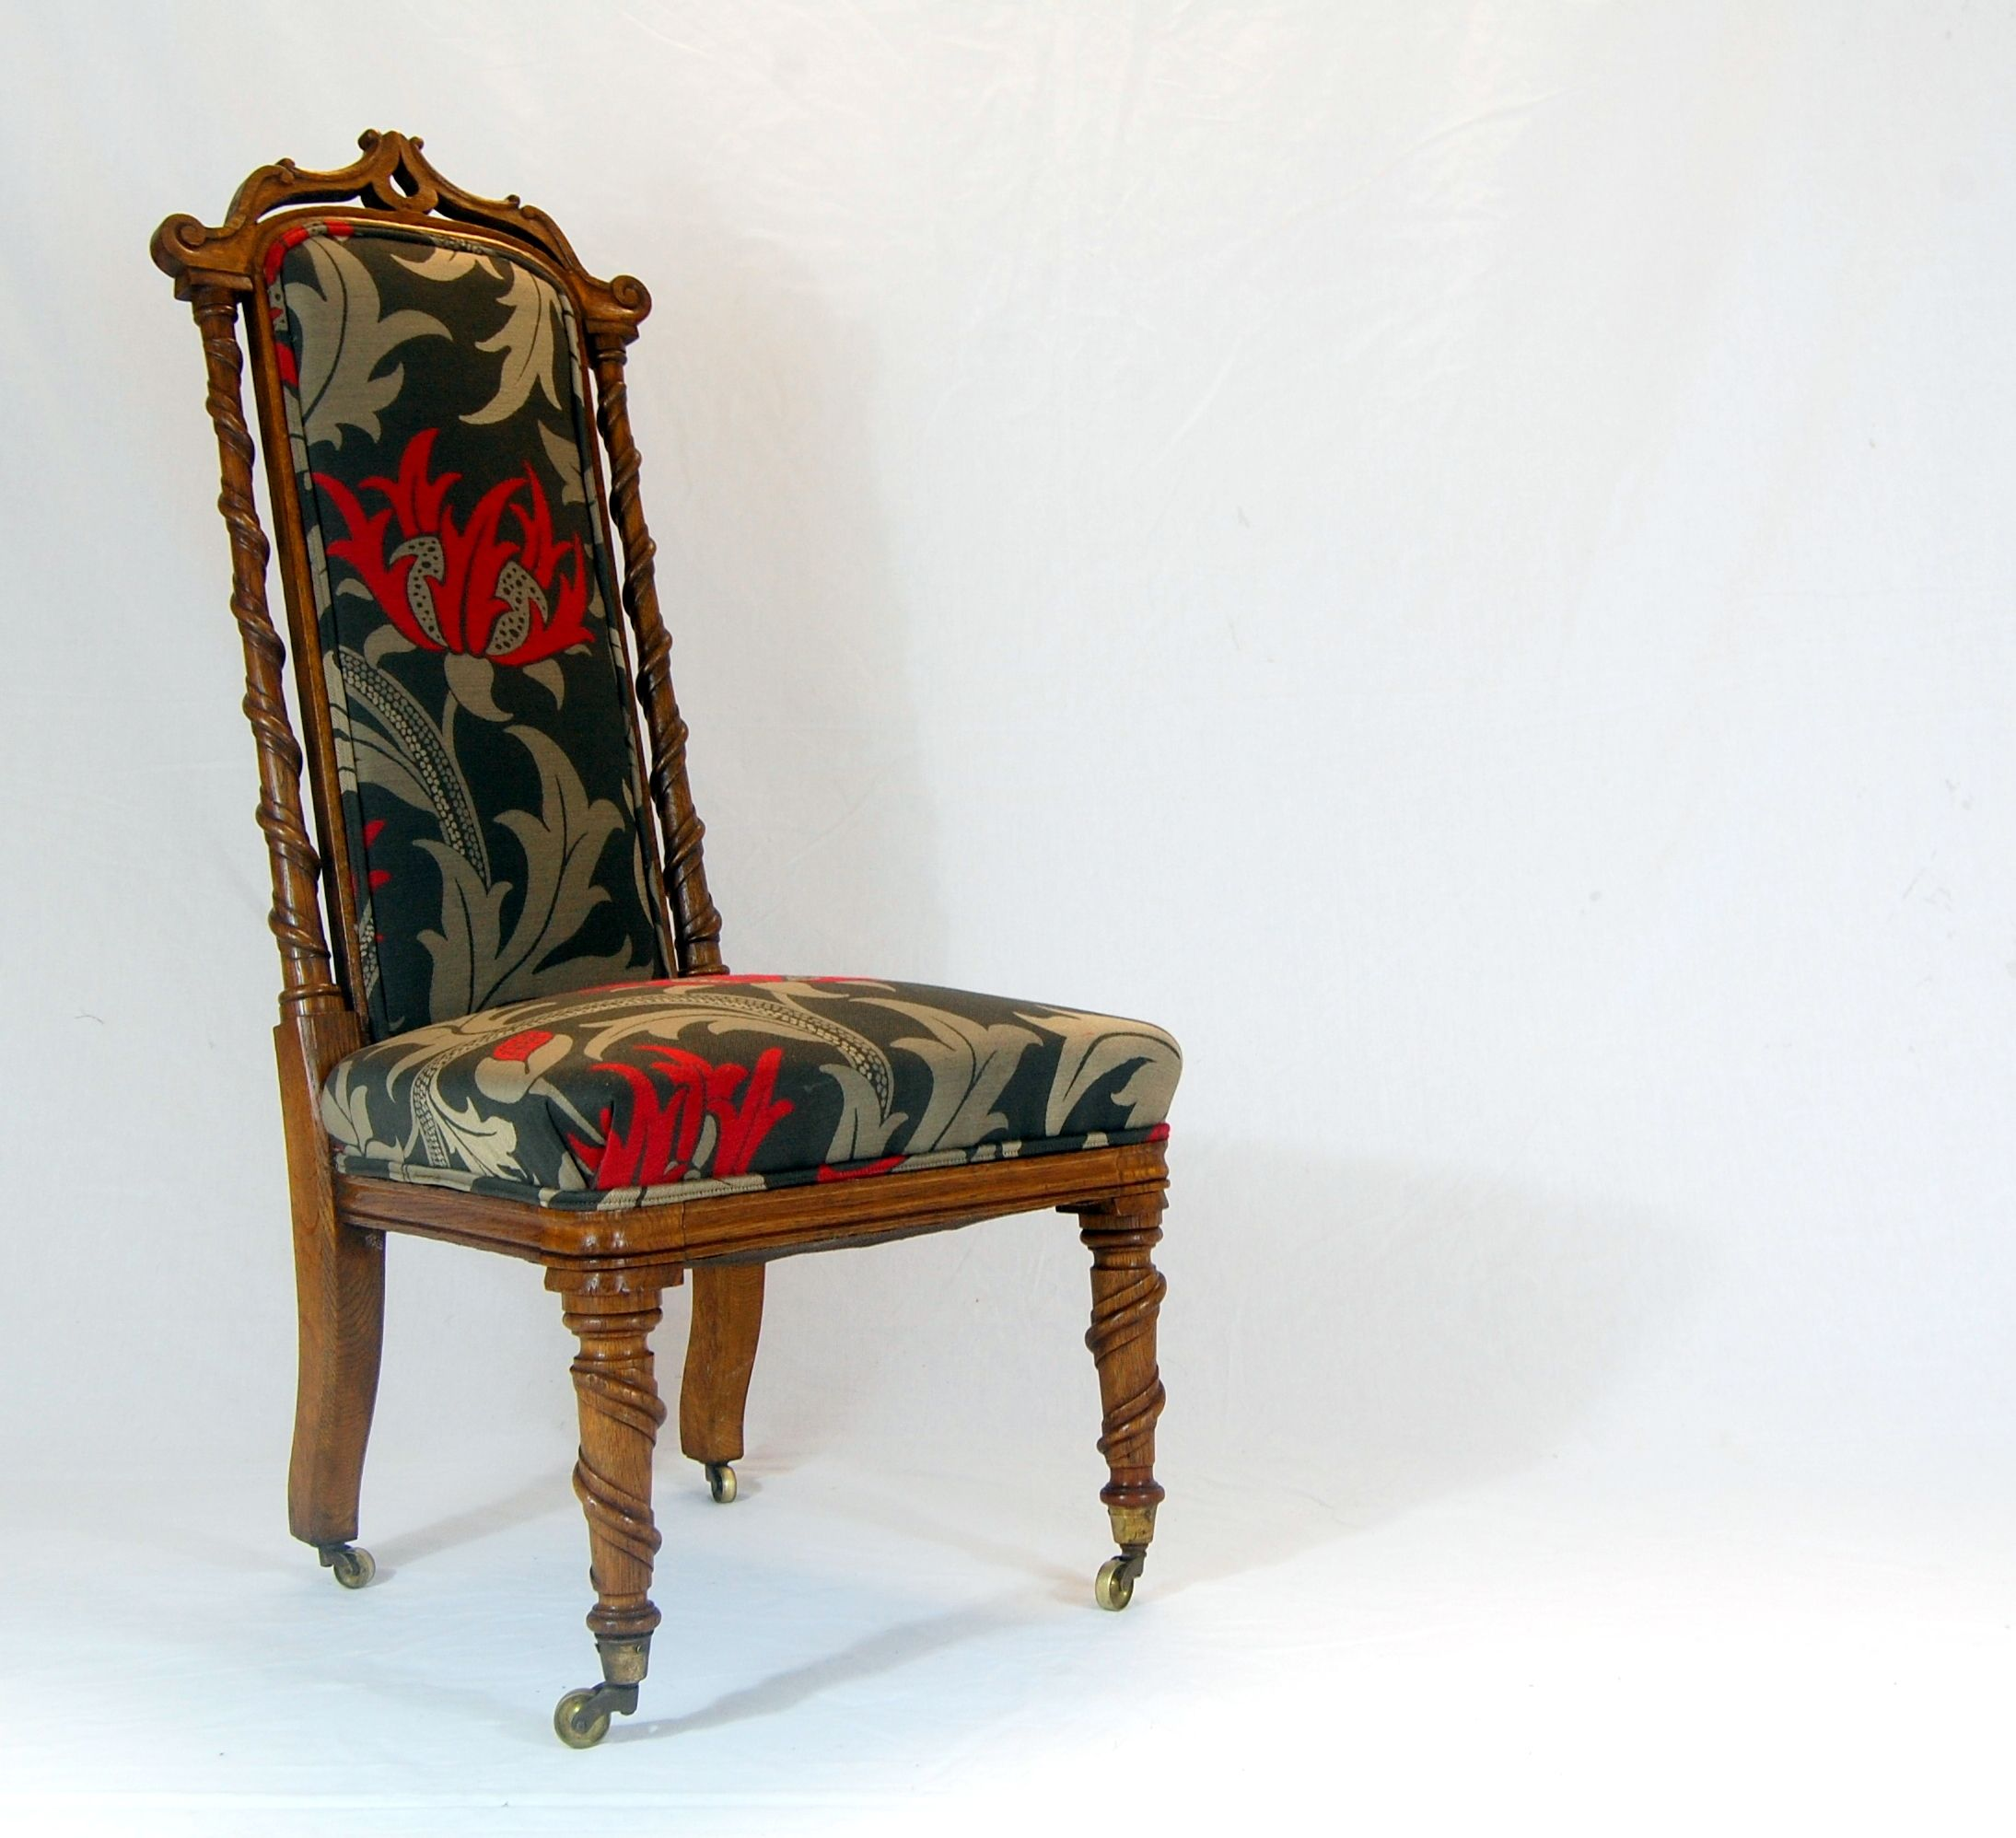 Beautiful Victorian Nursing Chair newly finished in William Morris